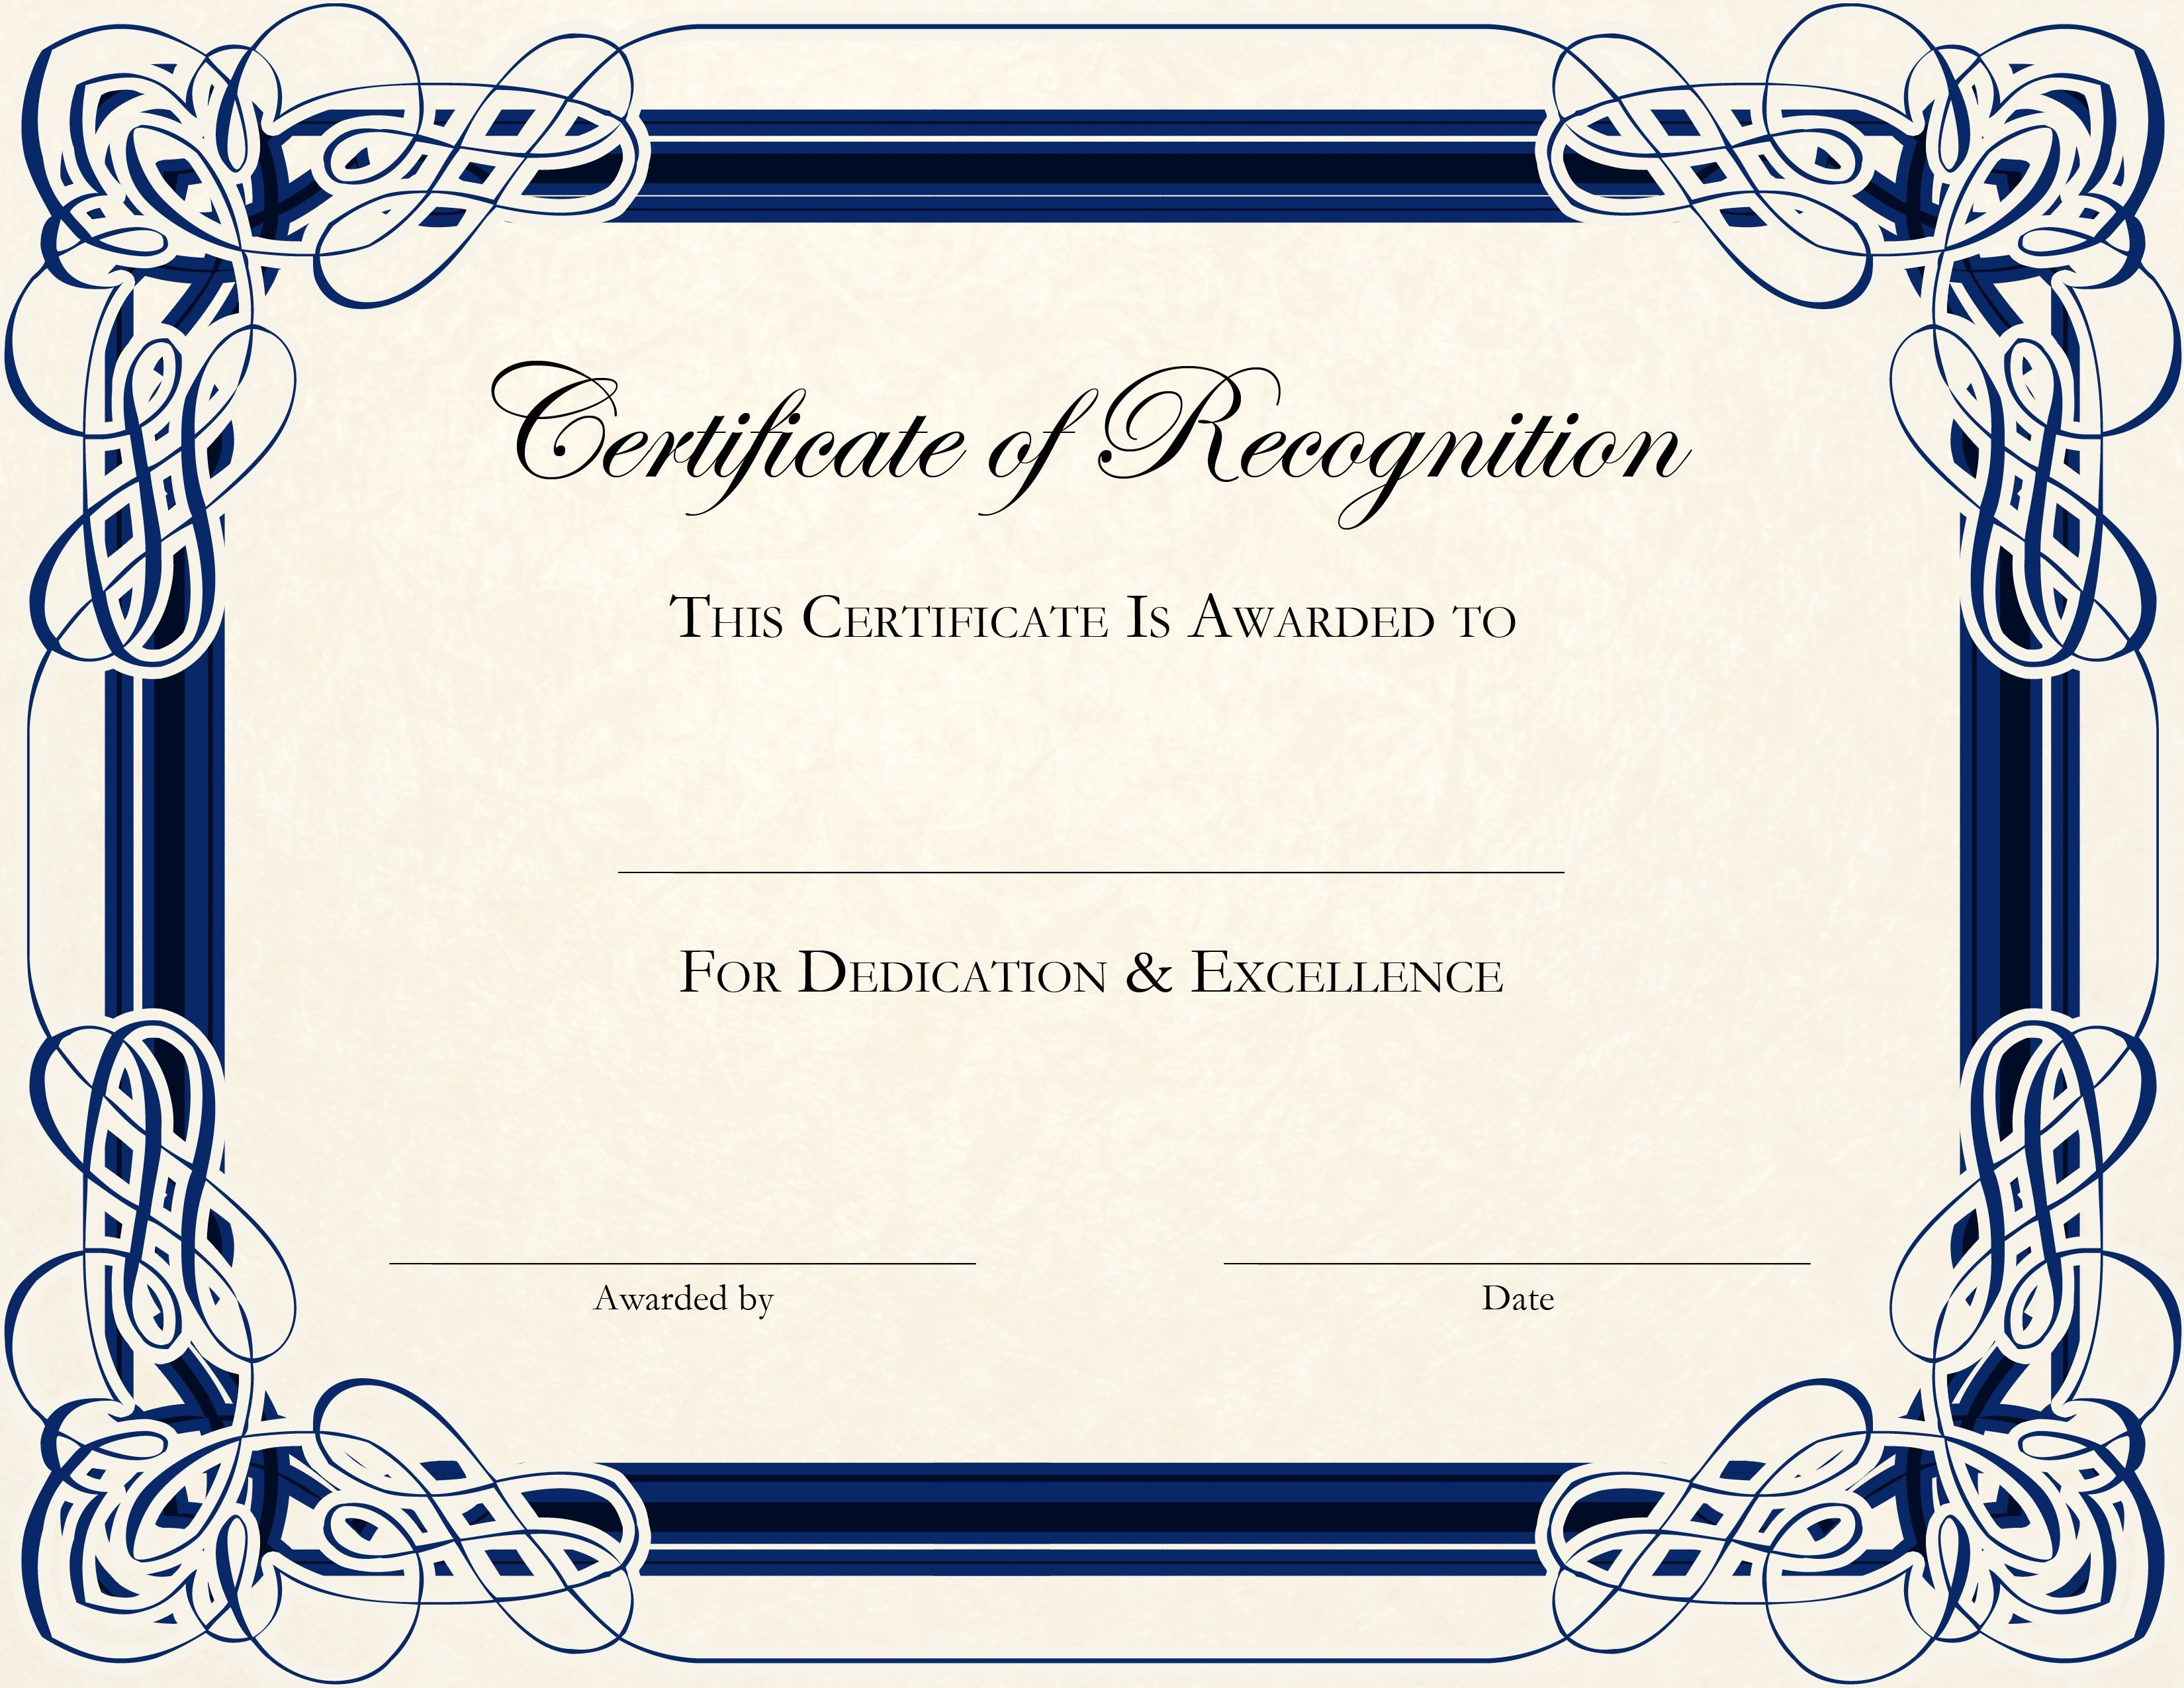 Free Printable Certificate Templates For Teachers | Besttemplate123 - Free Printable Certificate Templates